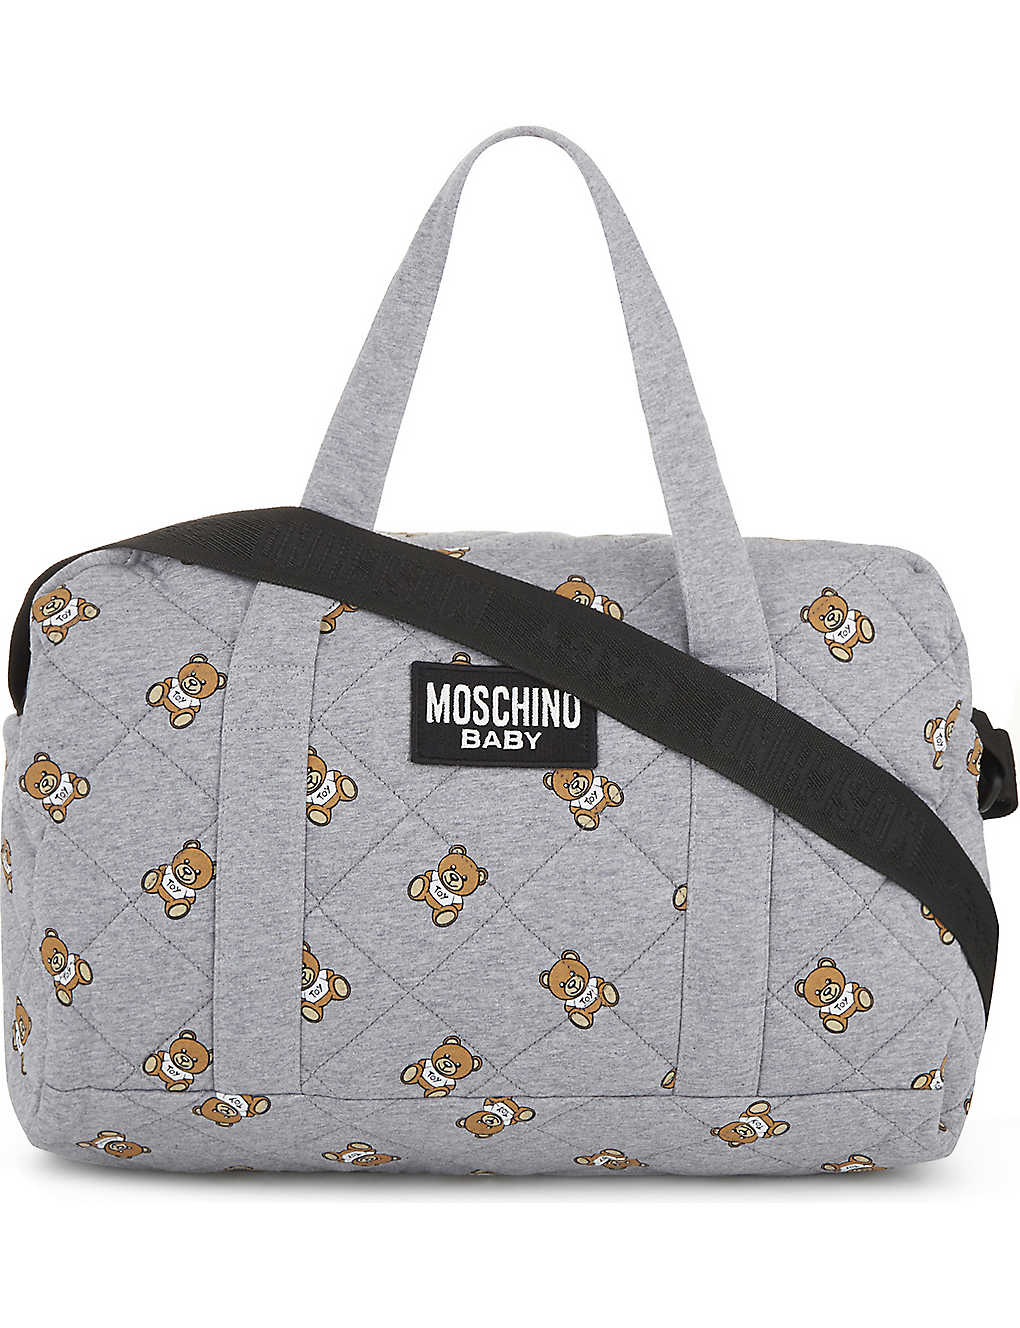 c4fa2d96c3 MOSCHINO - Teddy bear print changing bag | Selfridges.com